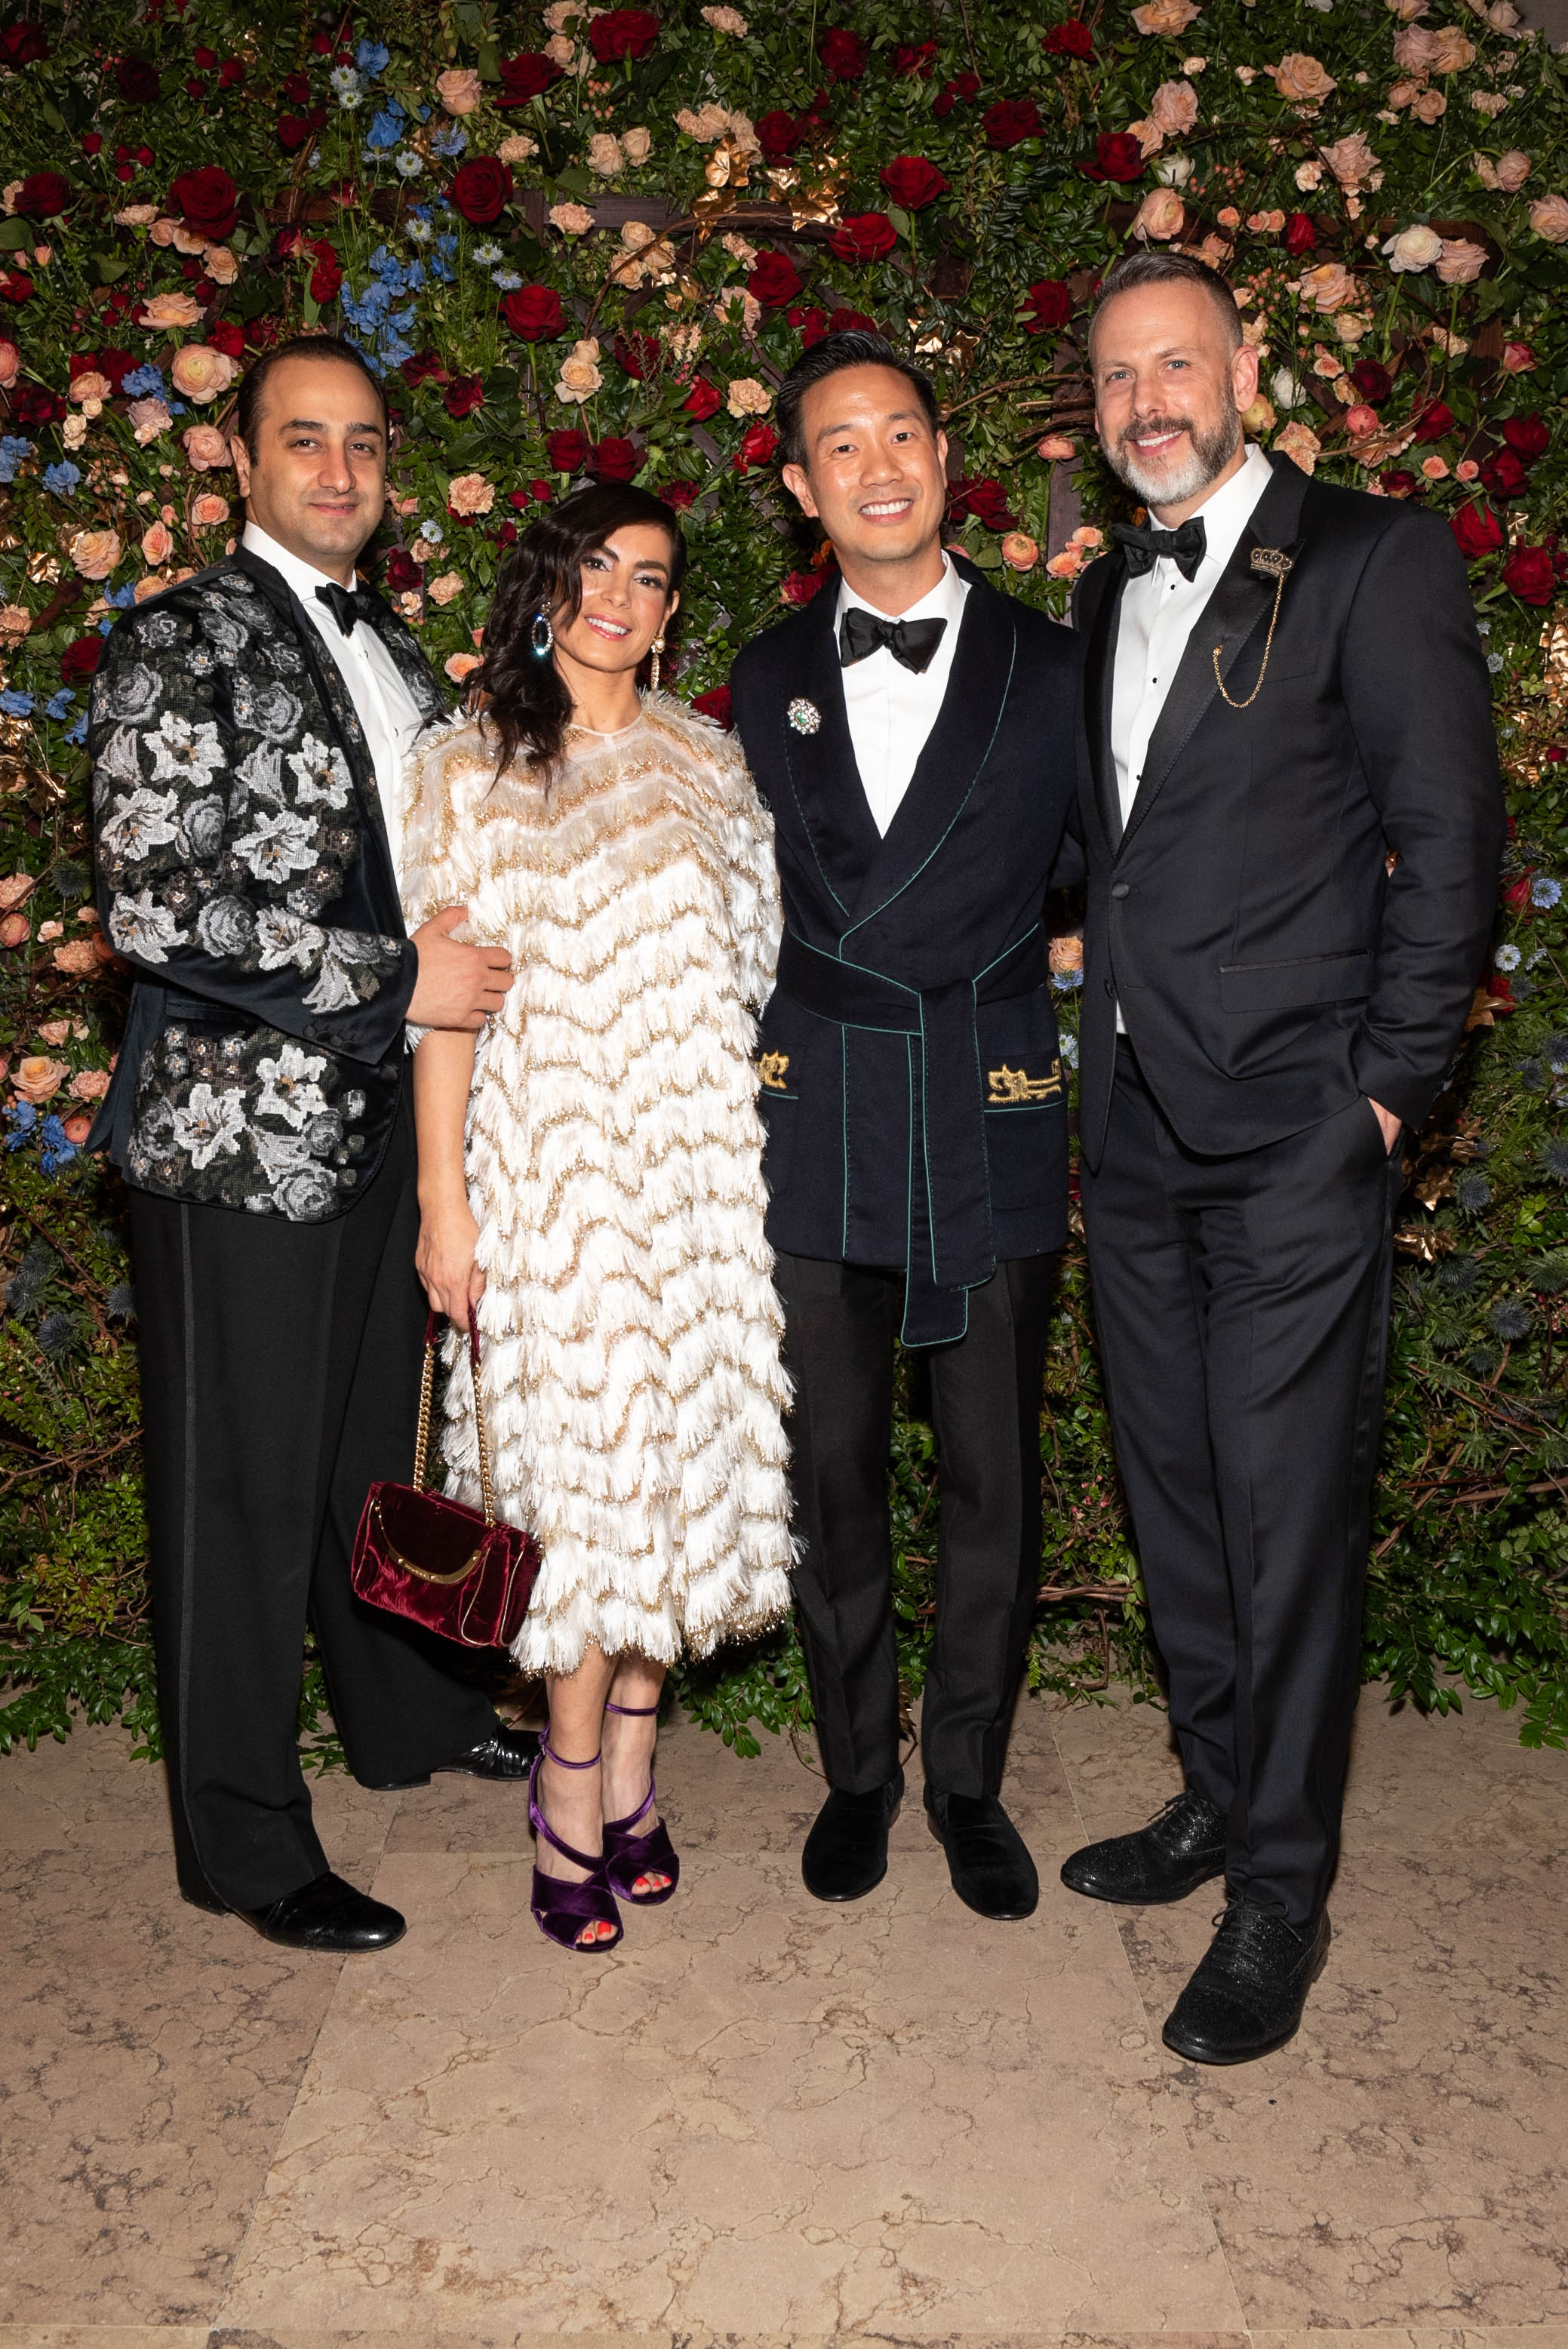 Daniel Ezra, Lizzie Asher, Trustee Dr. Tai-Heng Cheng, and Dan Rothmann attend The Frick Collection's 20th Annual Young Fellows Ball at 1 East 70th Street on Thursday, March 21st, 2019. Photography, Courtesy of The Frick Collection.